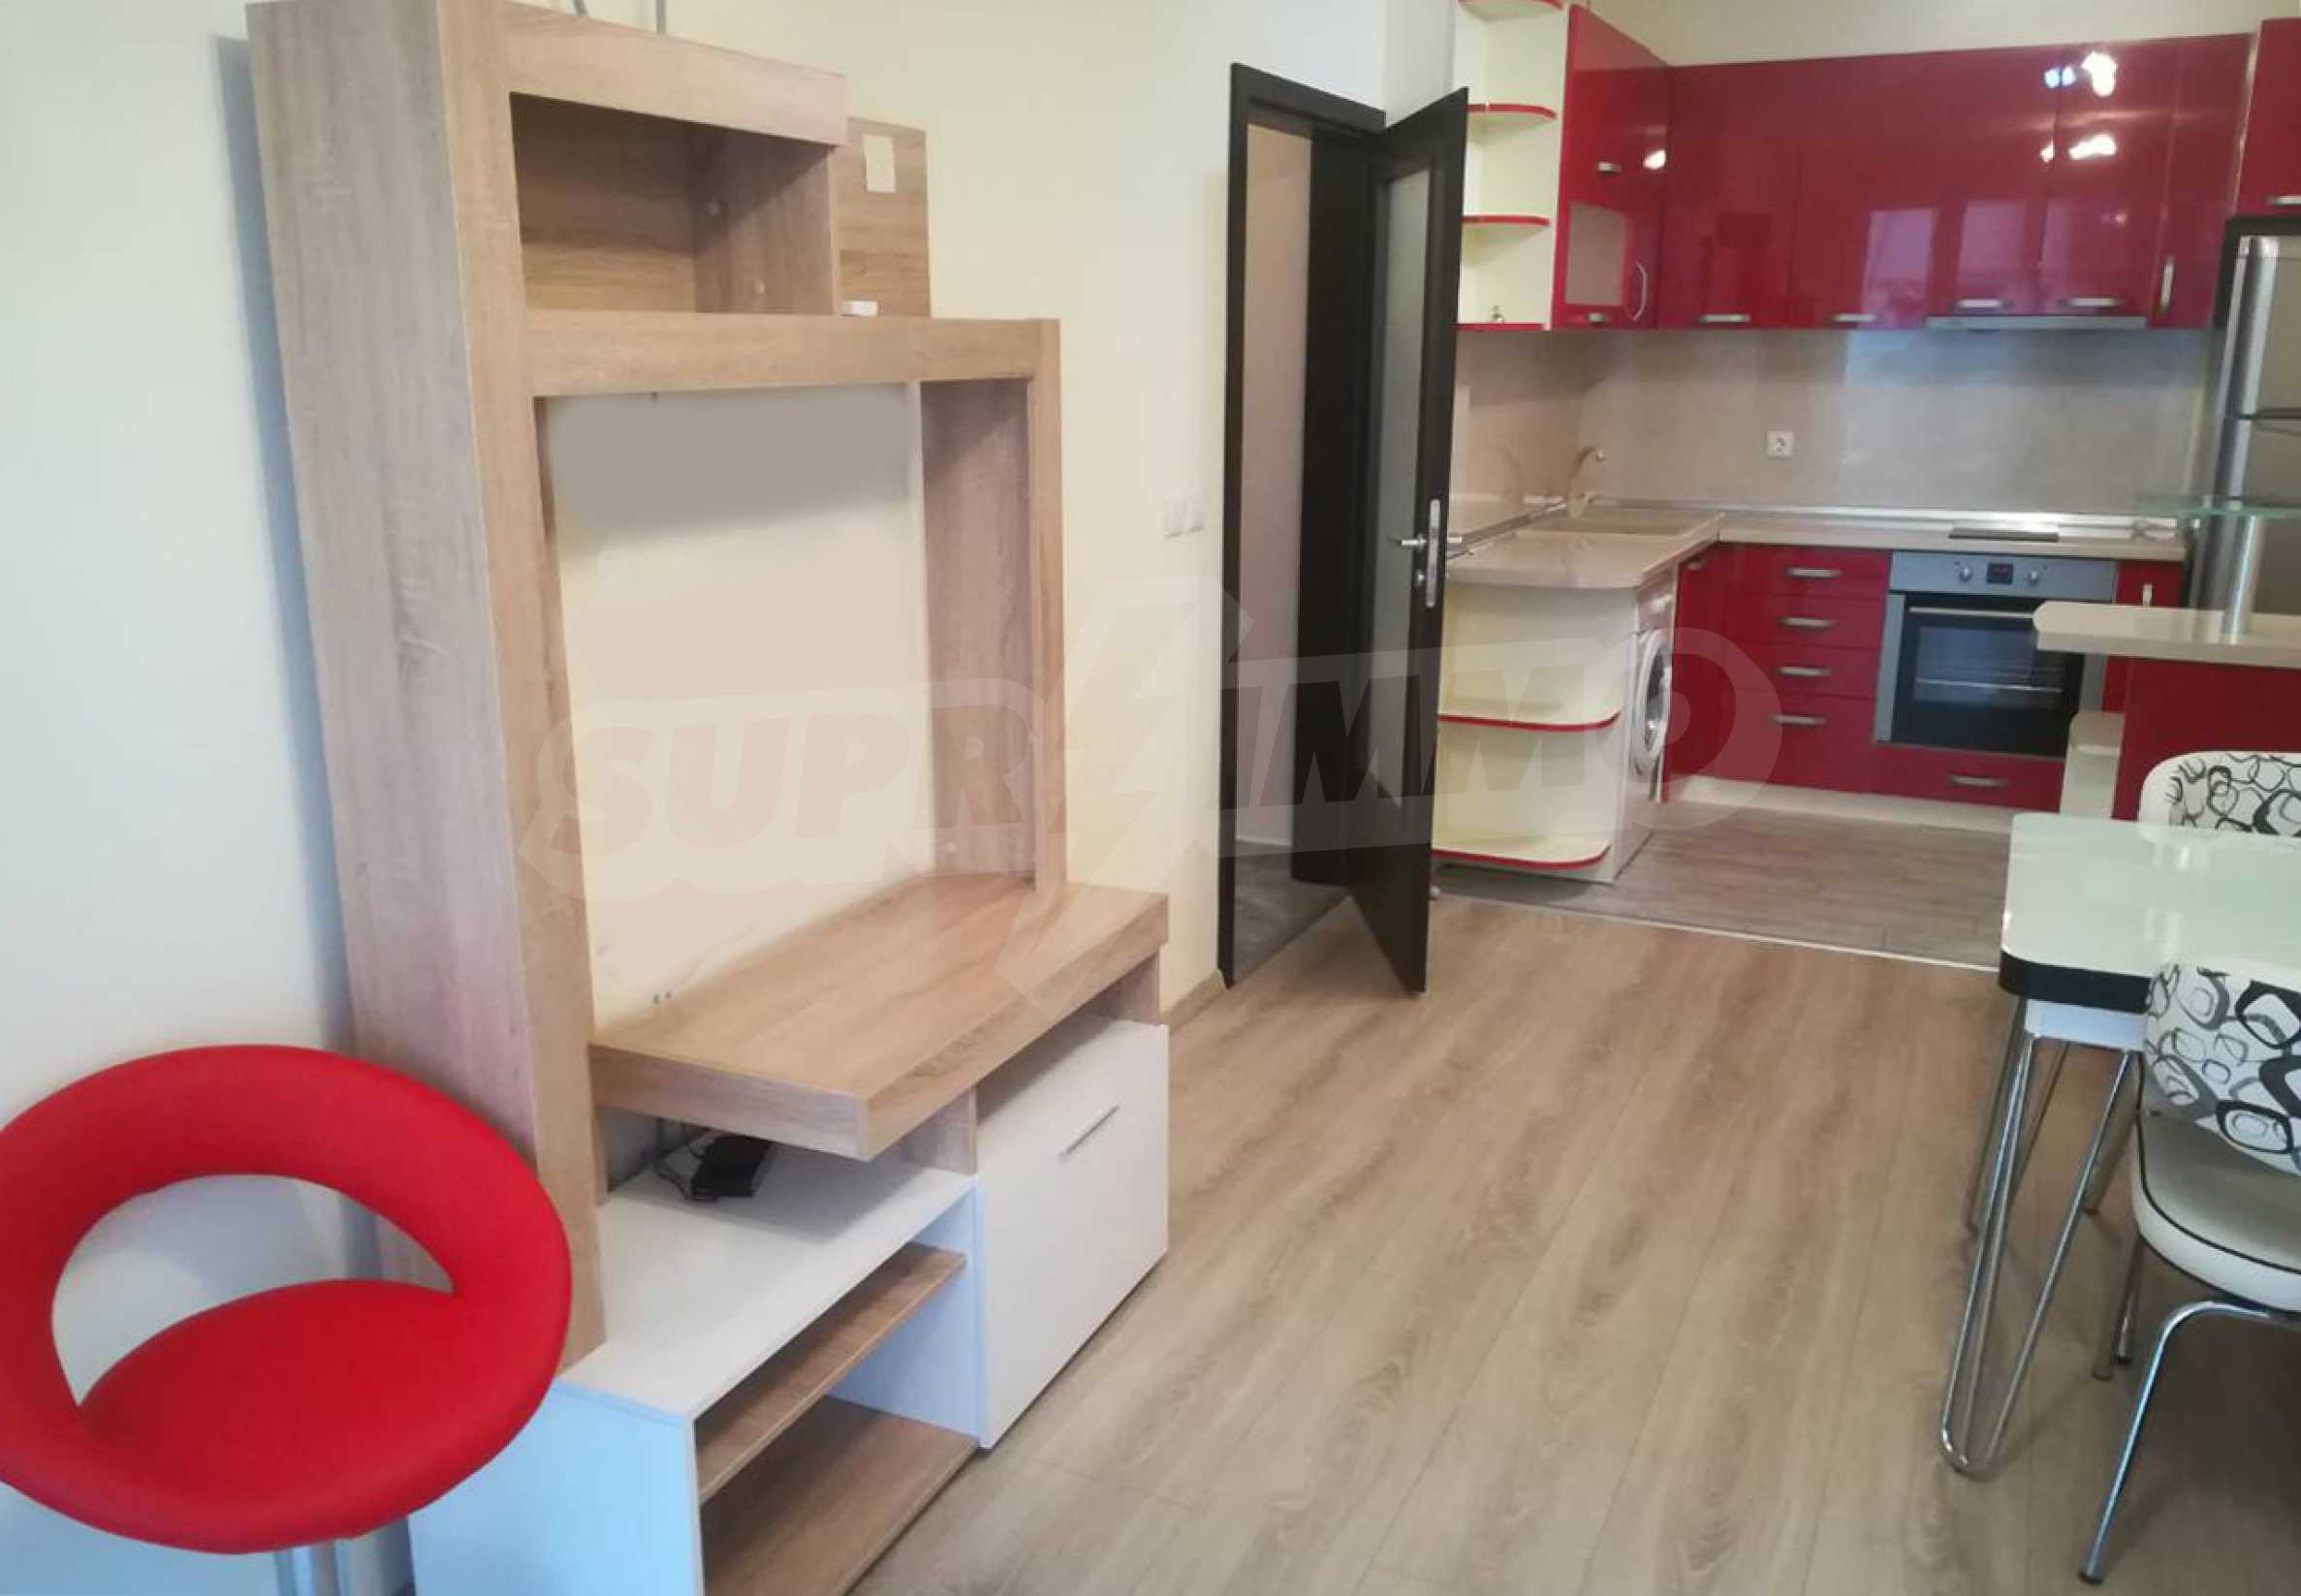 2-bedroom apartment for rent in Sofia, Bulgaria - Rentals - 2-bedroom apartment.